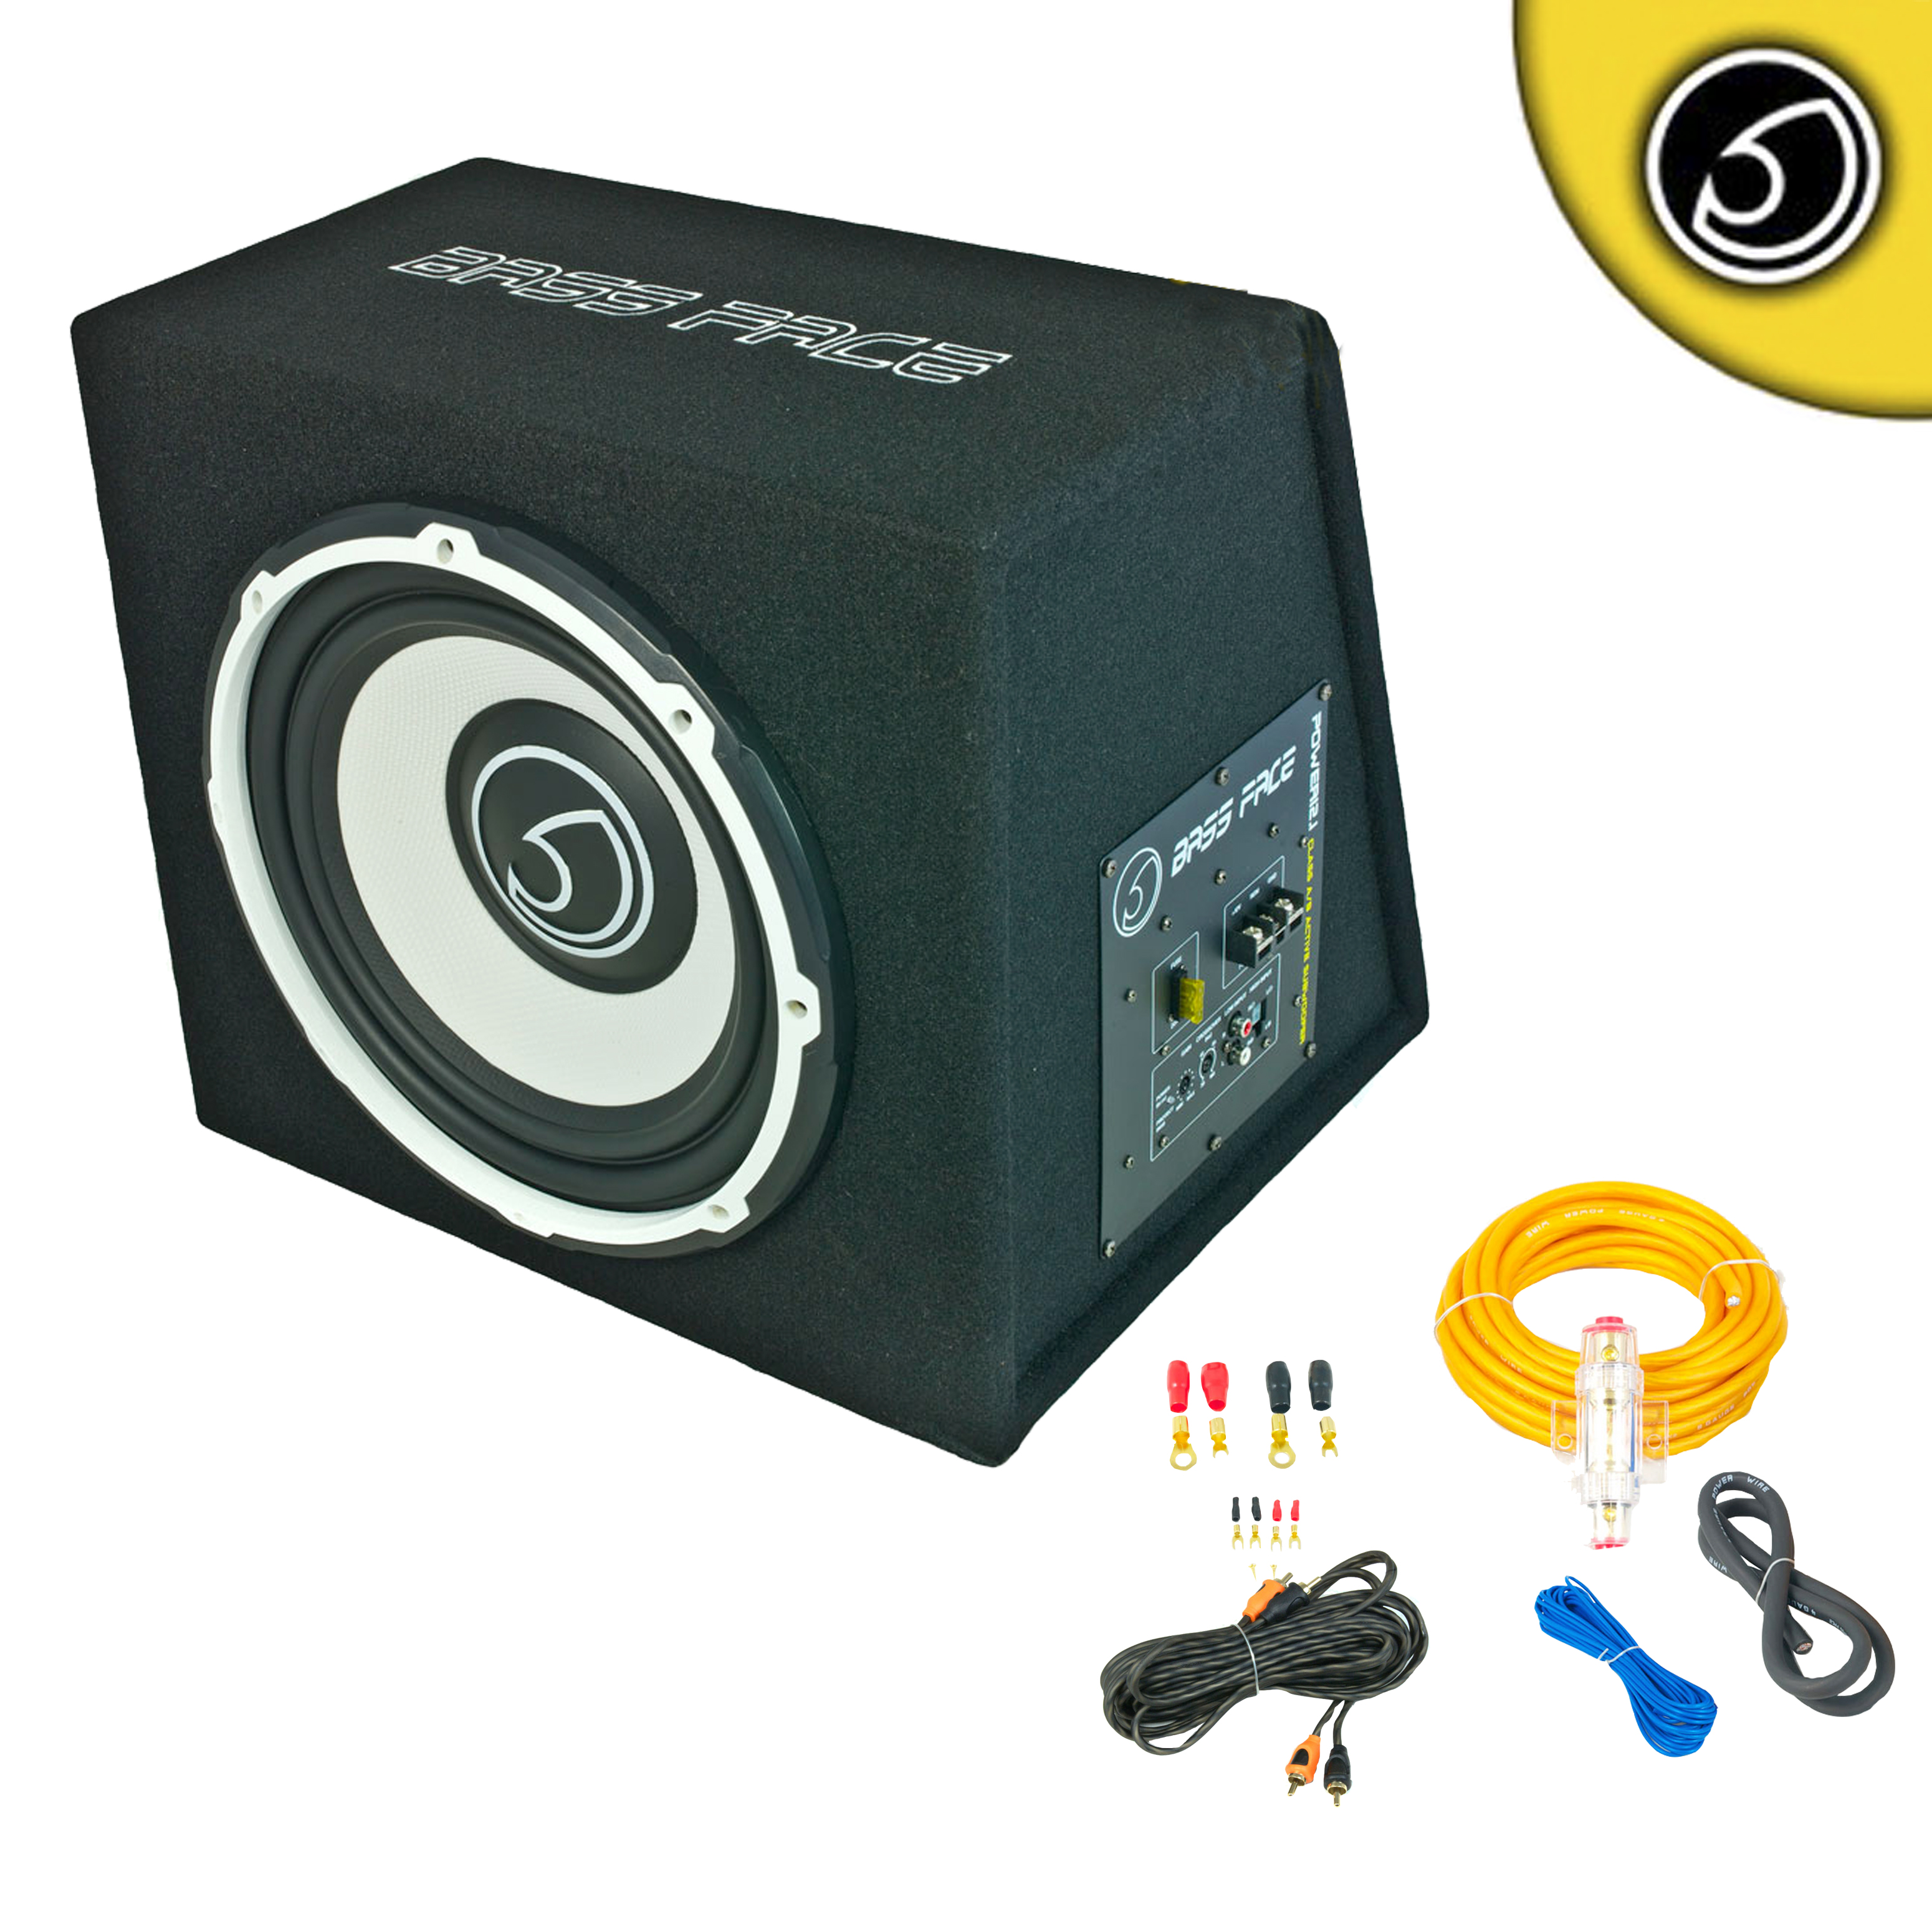 """Bassface POWER12.1 1300w 12"""" Inch Active Sub Amplifier Bass Box With 8 Gauge Power Wiring & Twisted PRCA Phono Cable"""